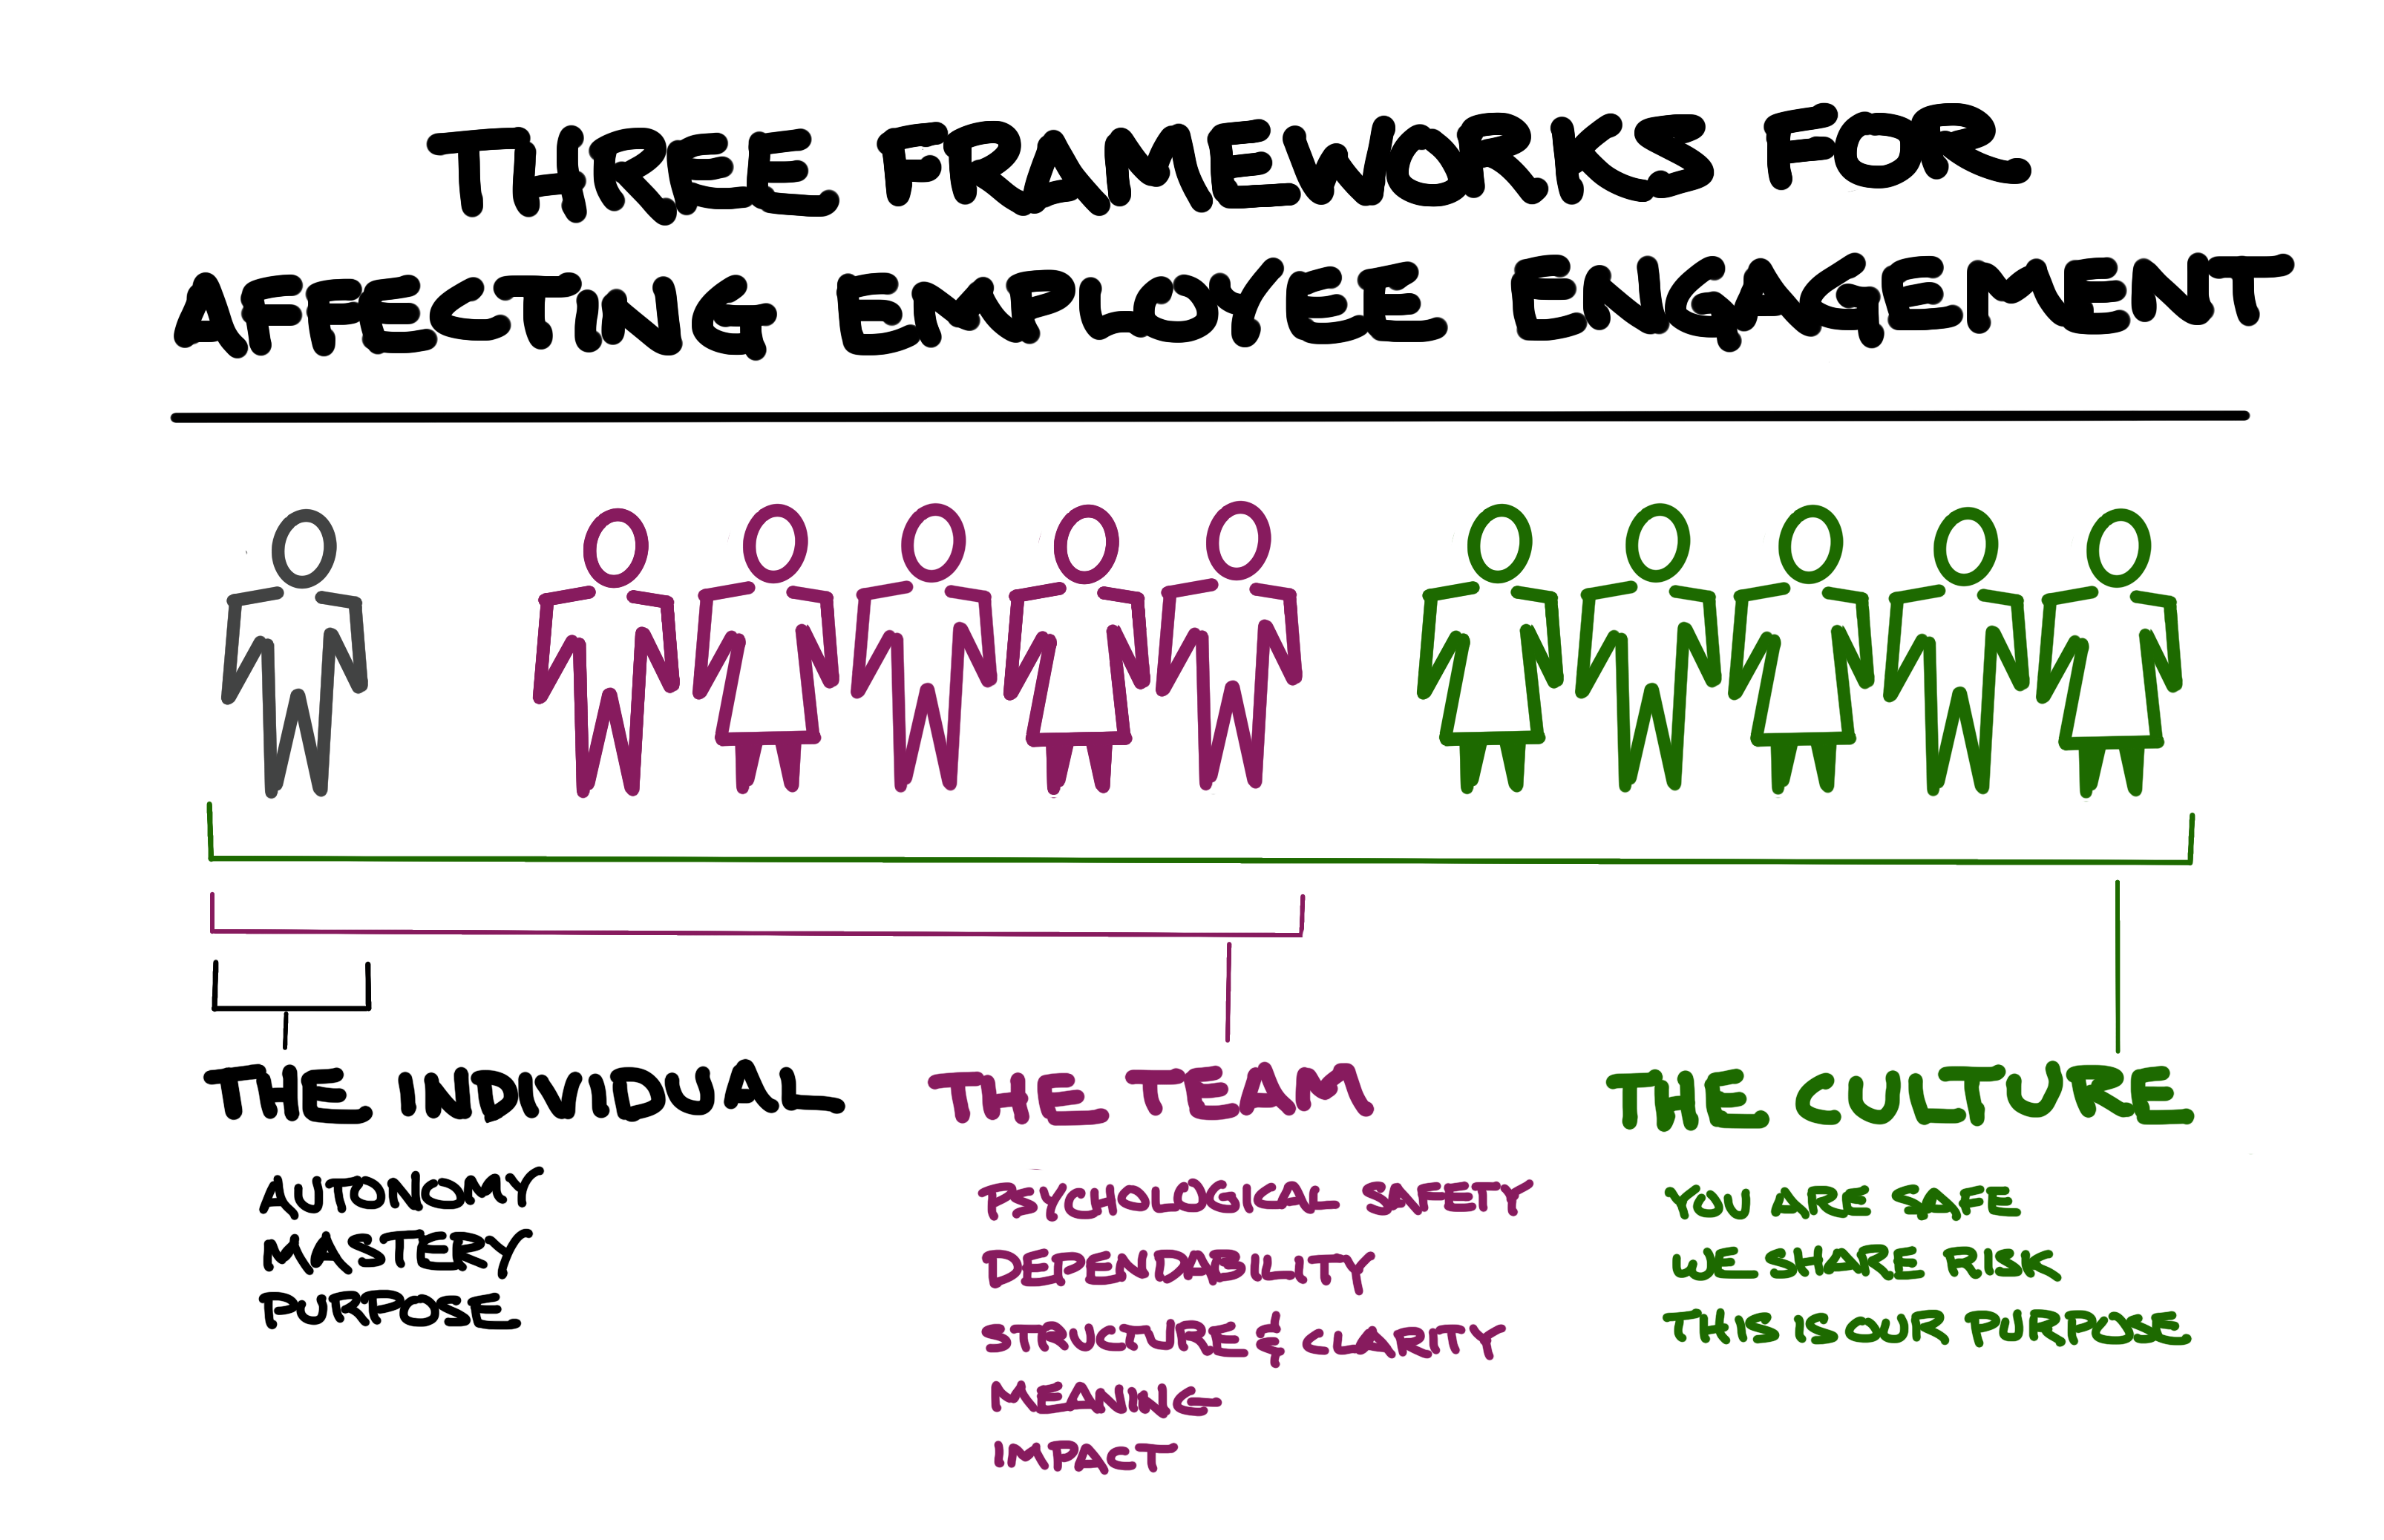 three frameworks for affecting employee engagement